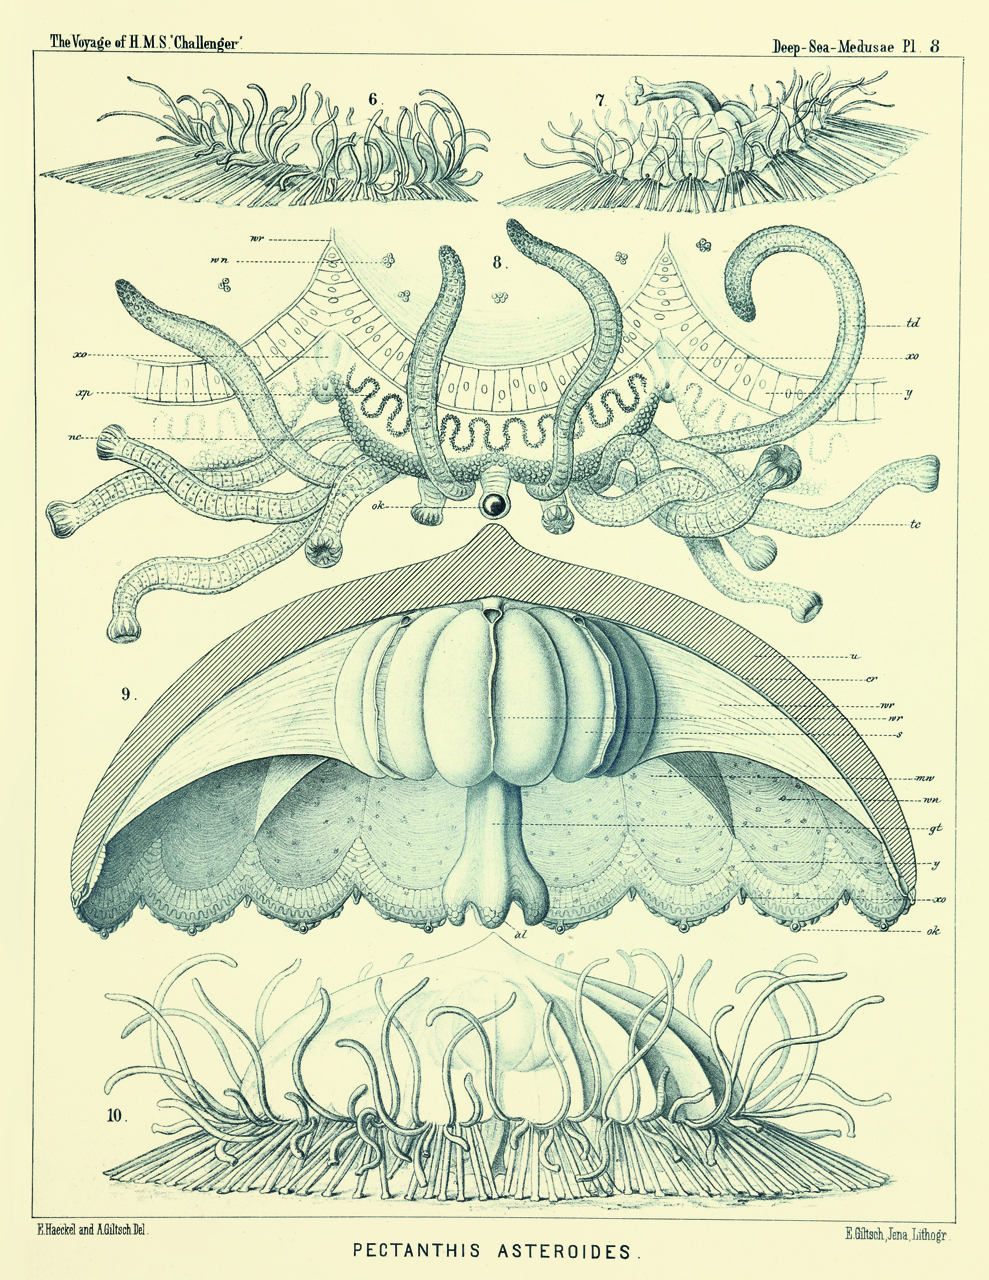 Art Forms from the Abyss: Ernst Haeckel's Images From The HMS Challenger Expedition